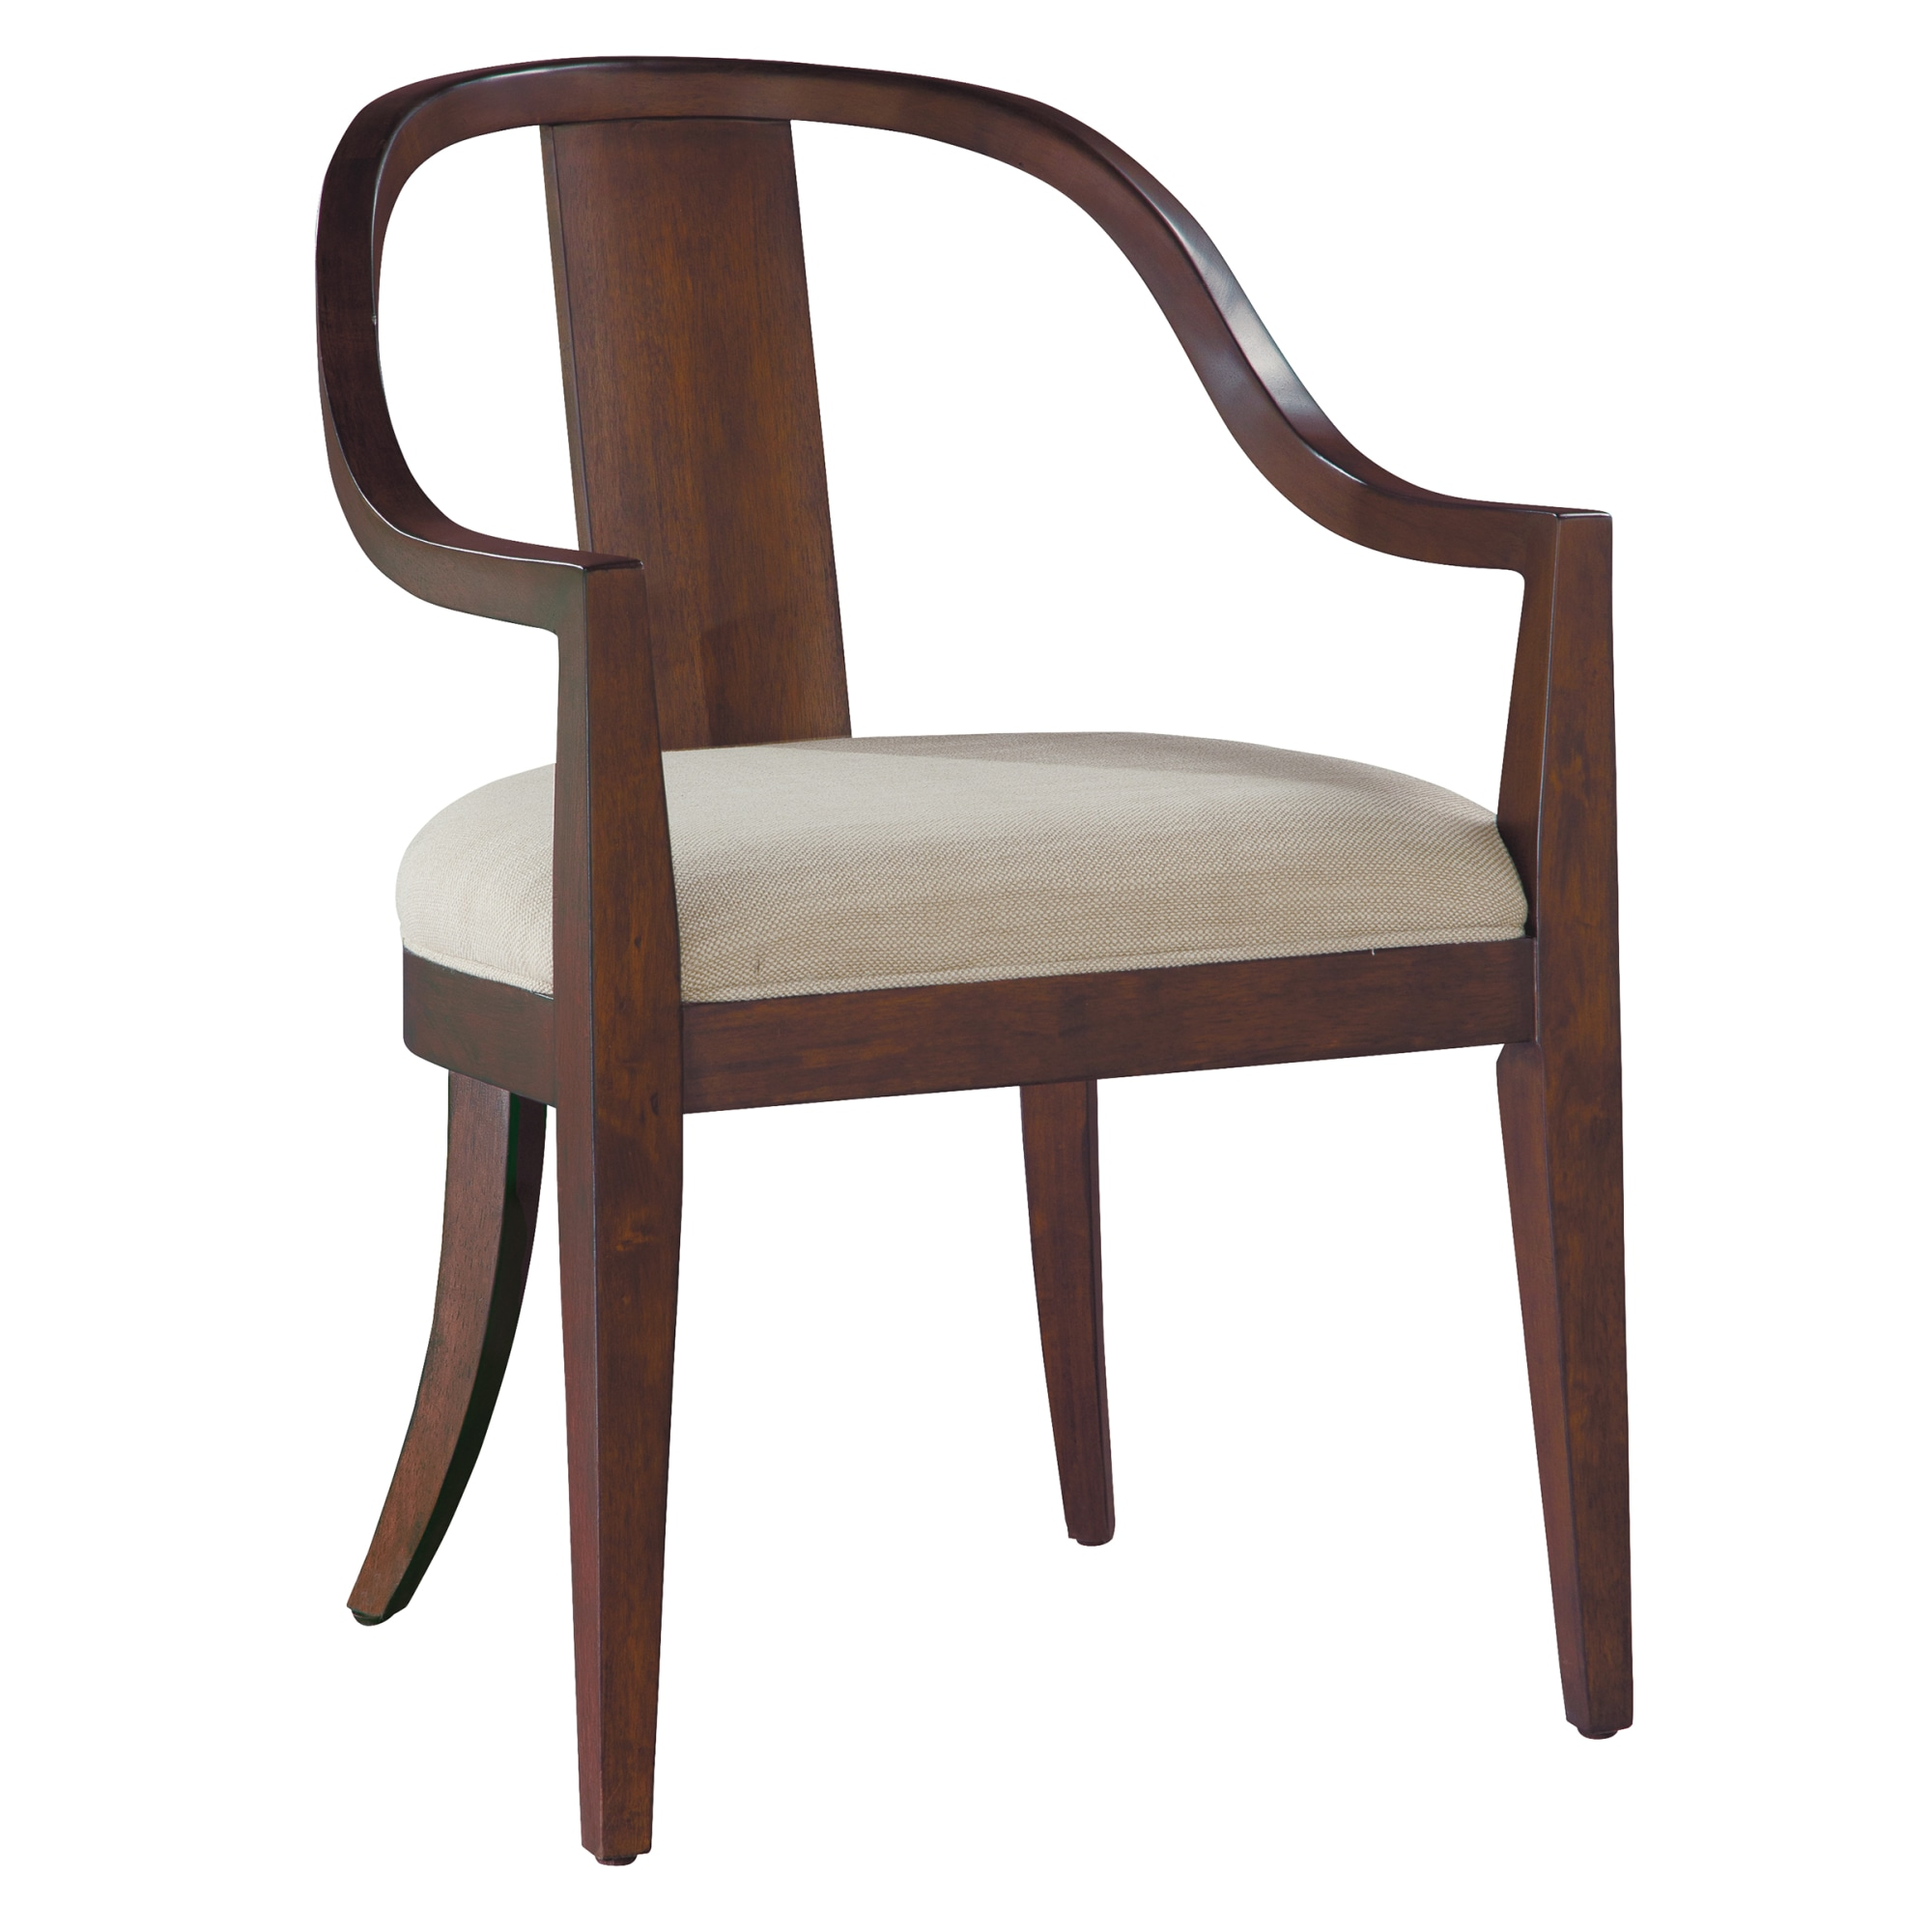 Image for 2-4324 Monterey Point Curved Back Arm Chair from Hekman Official Website